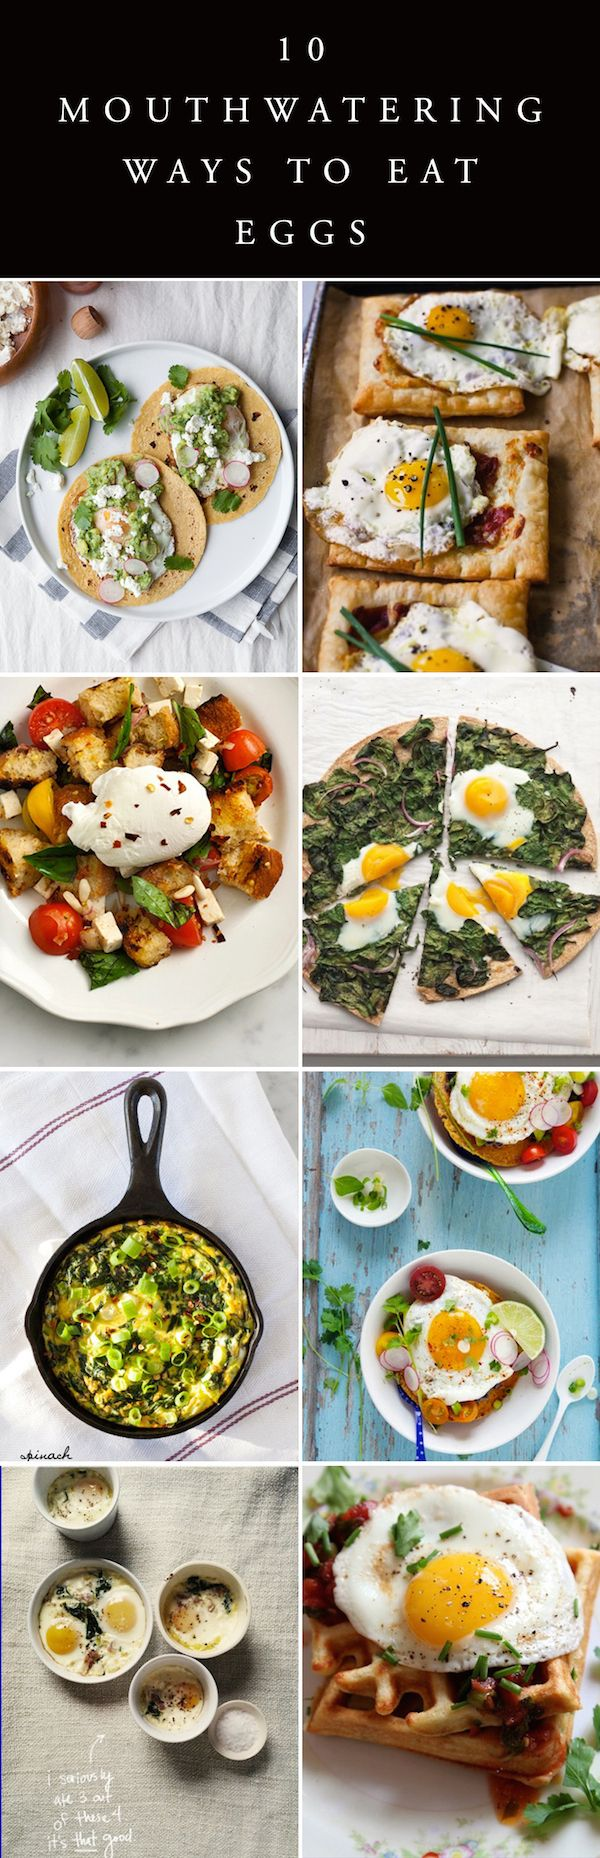 10 great egg recipes